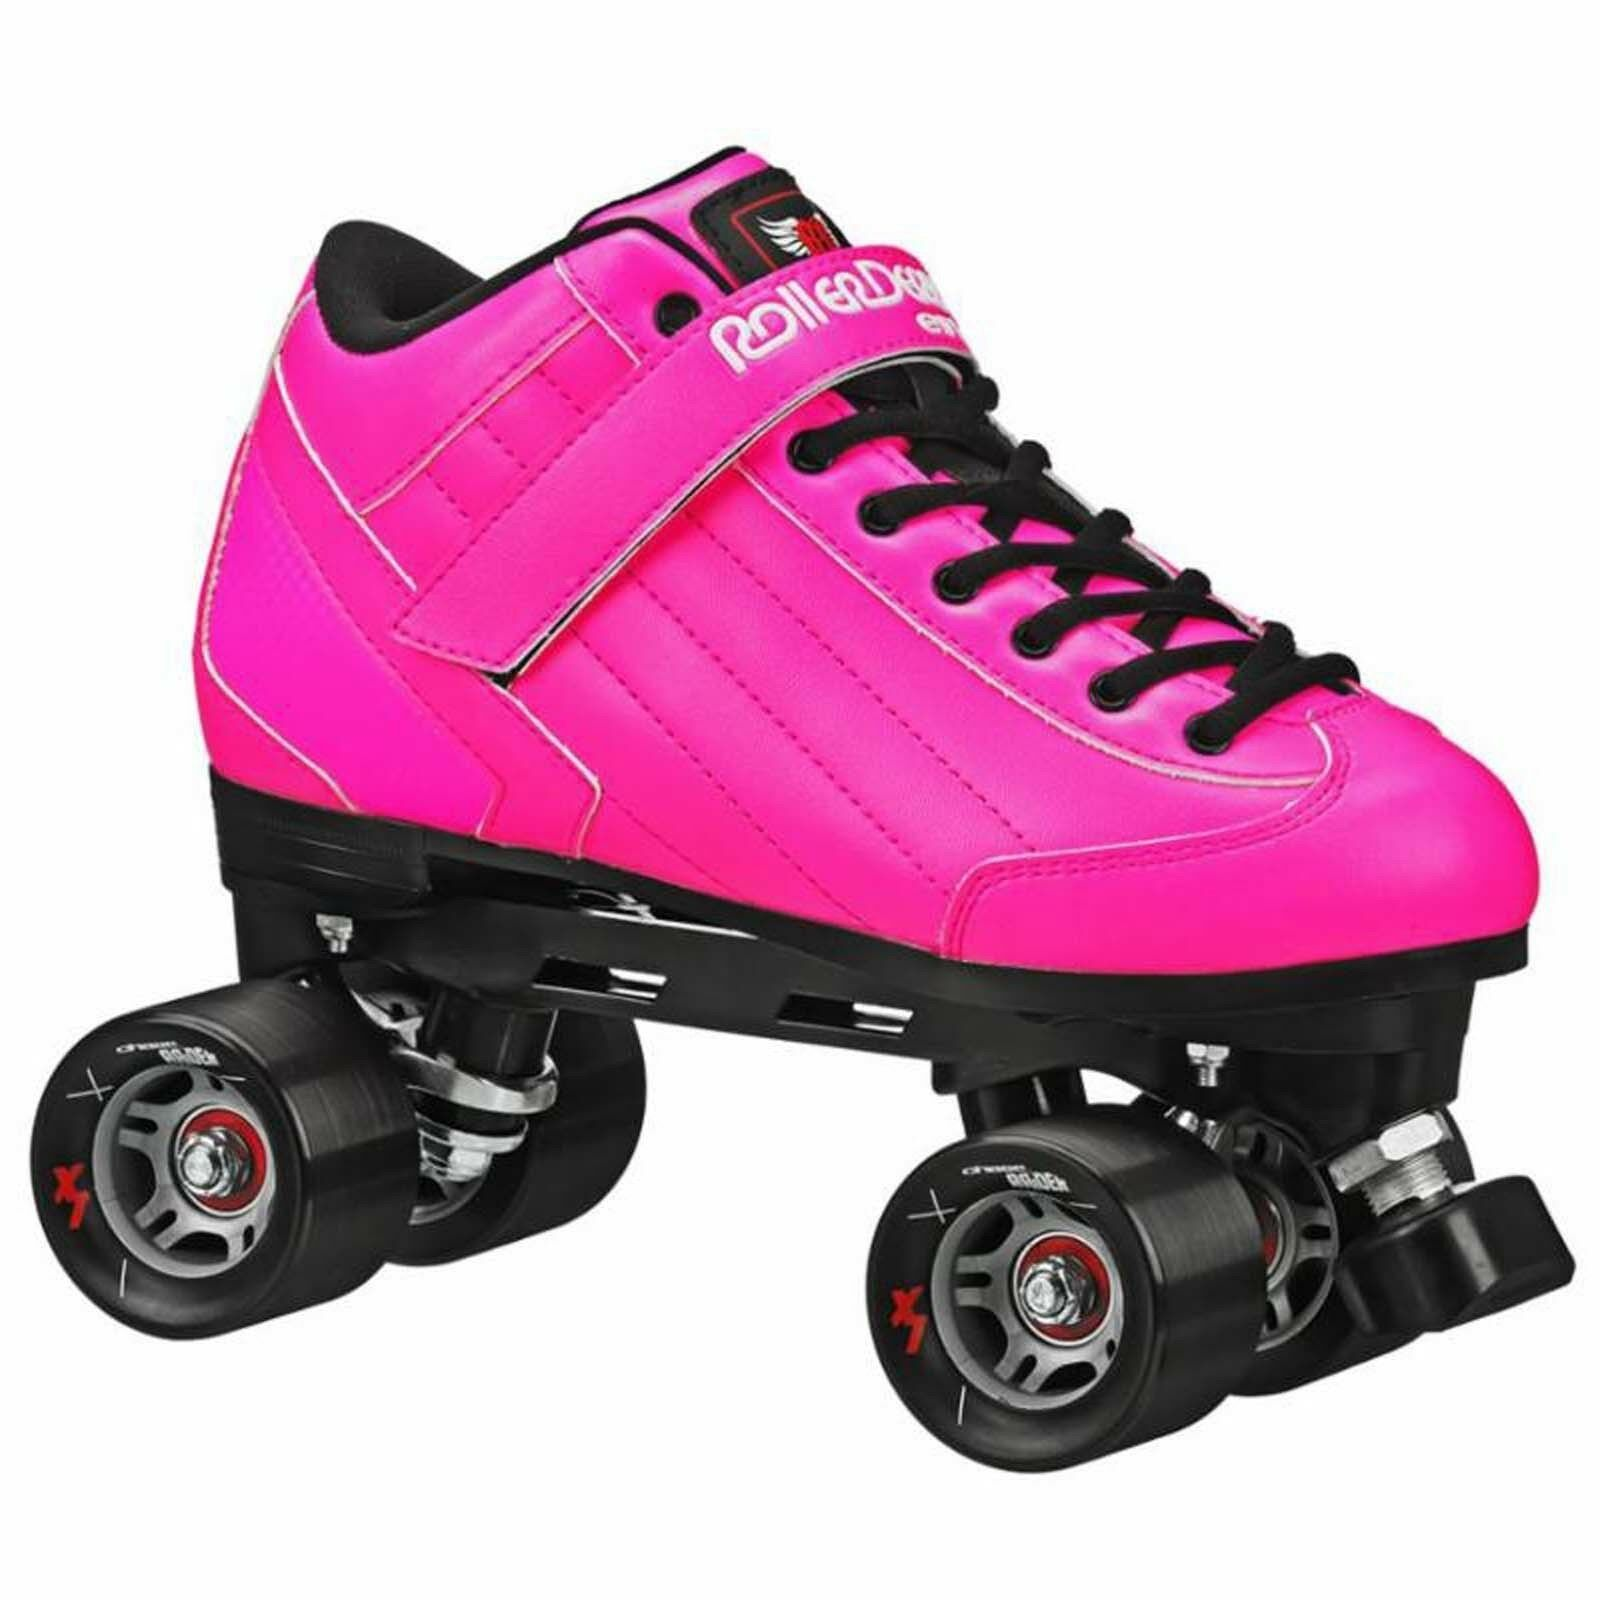 New Rosa Roller Skates - Roller Derby Stomp 5 Elite Men Größe 4-11